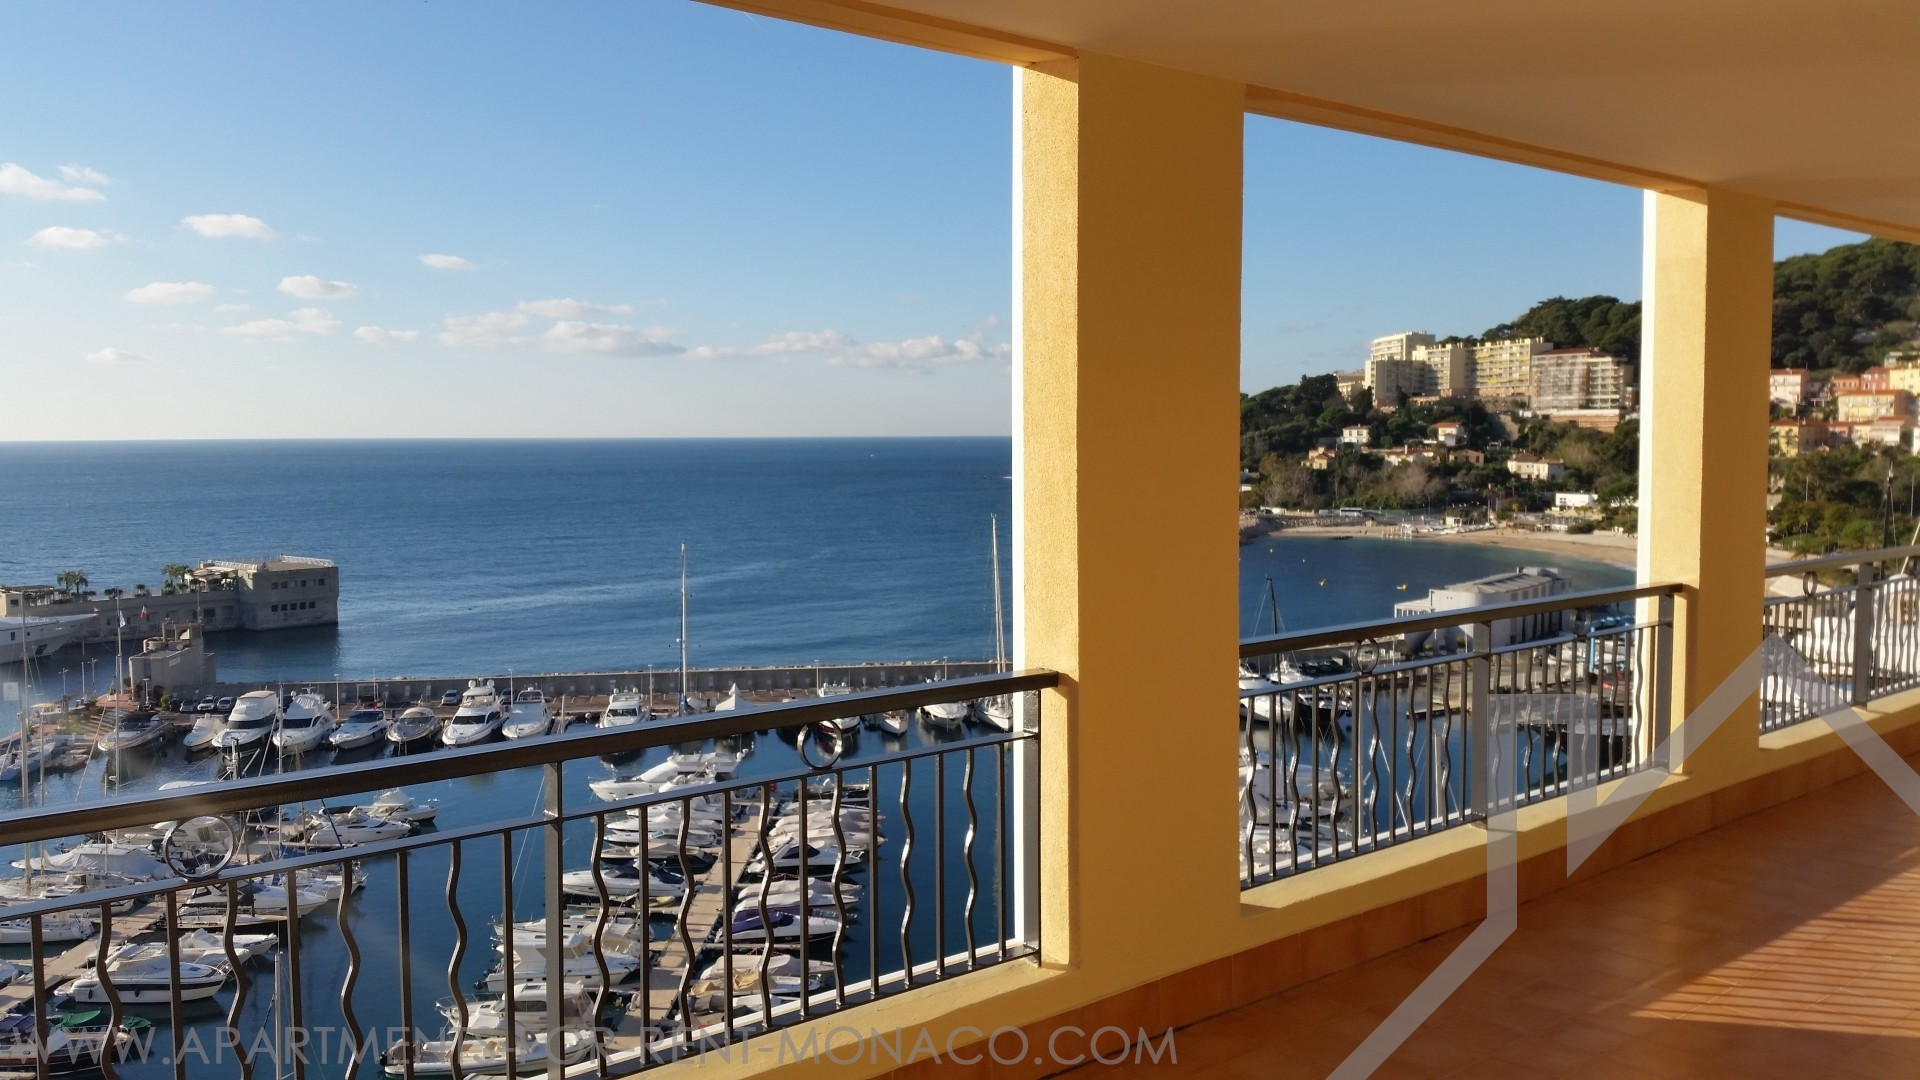 Luxurious apartment next to the sea - Appartamenti da affittare a MonteCarlo